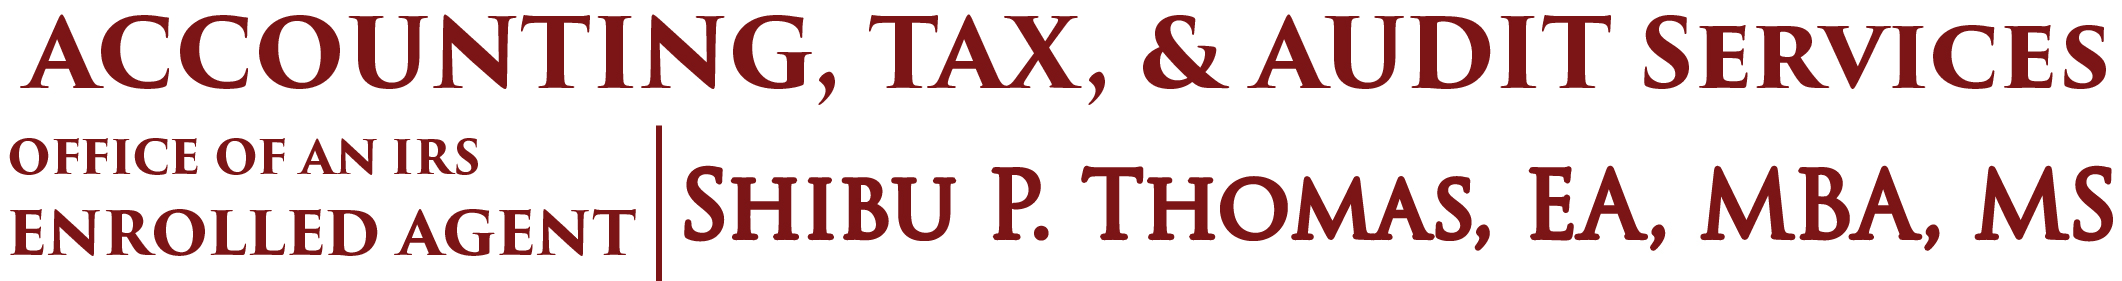 Staten Island, NY Accounting Firm | QuickAnswers Page | Accounting, Tax, & Audit Services Shibu P. Thomas, EA, MBA, MS